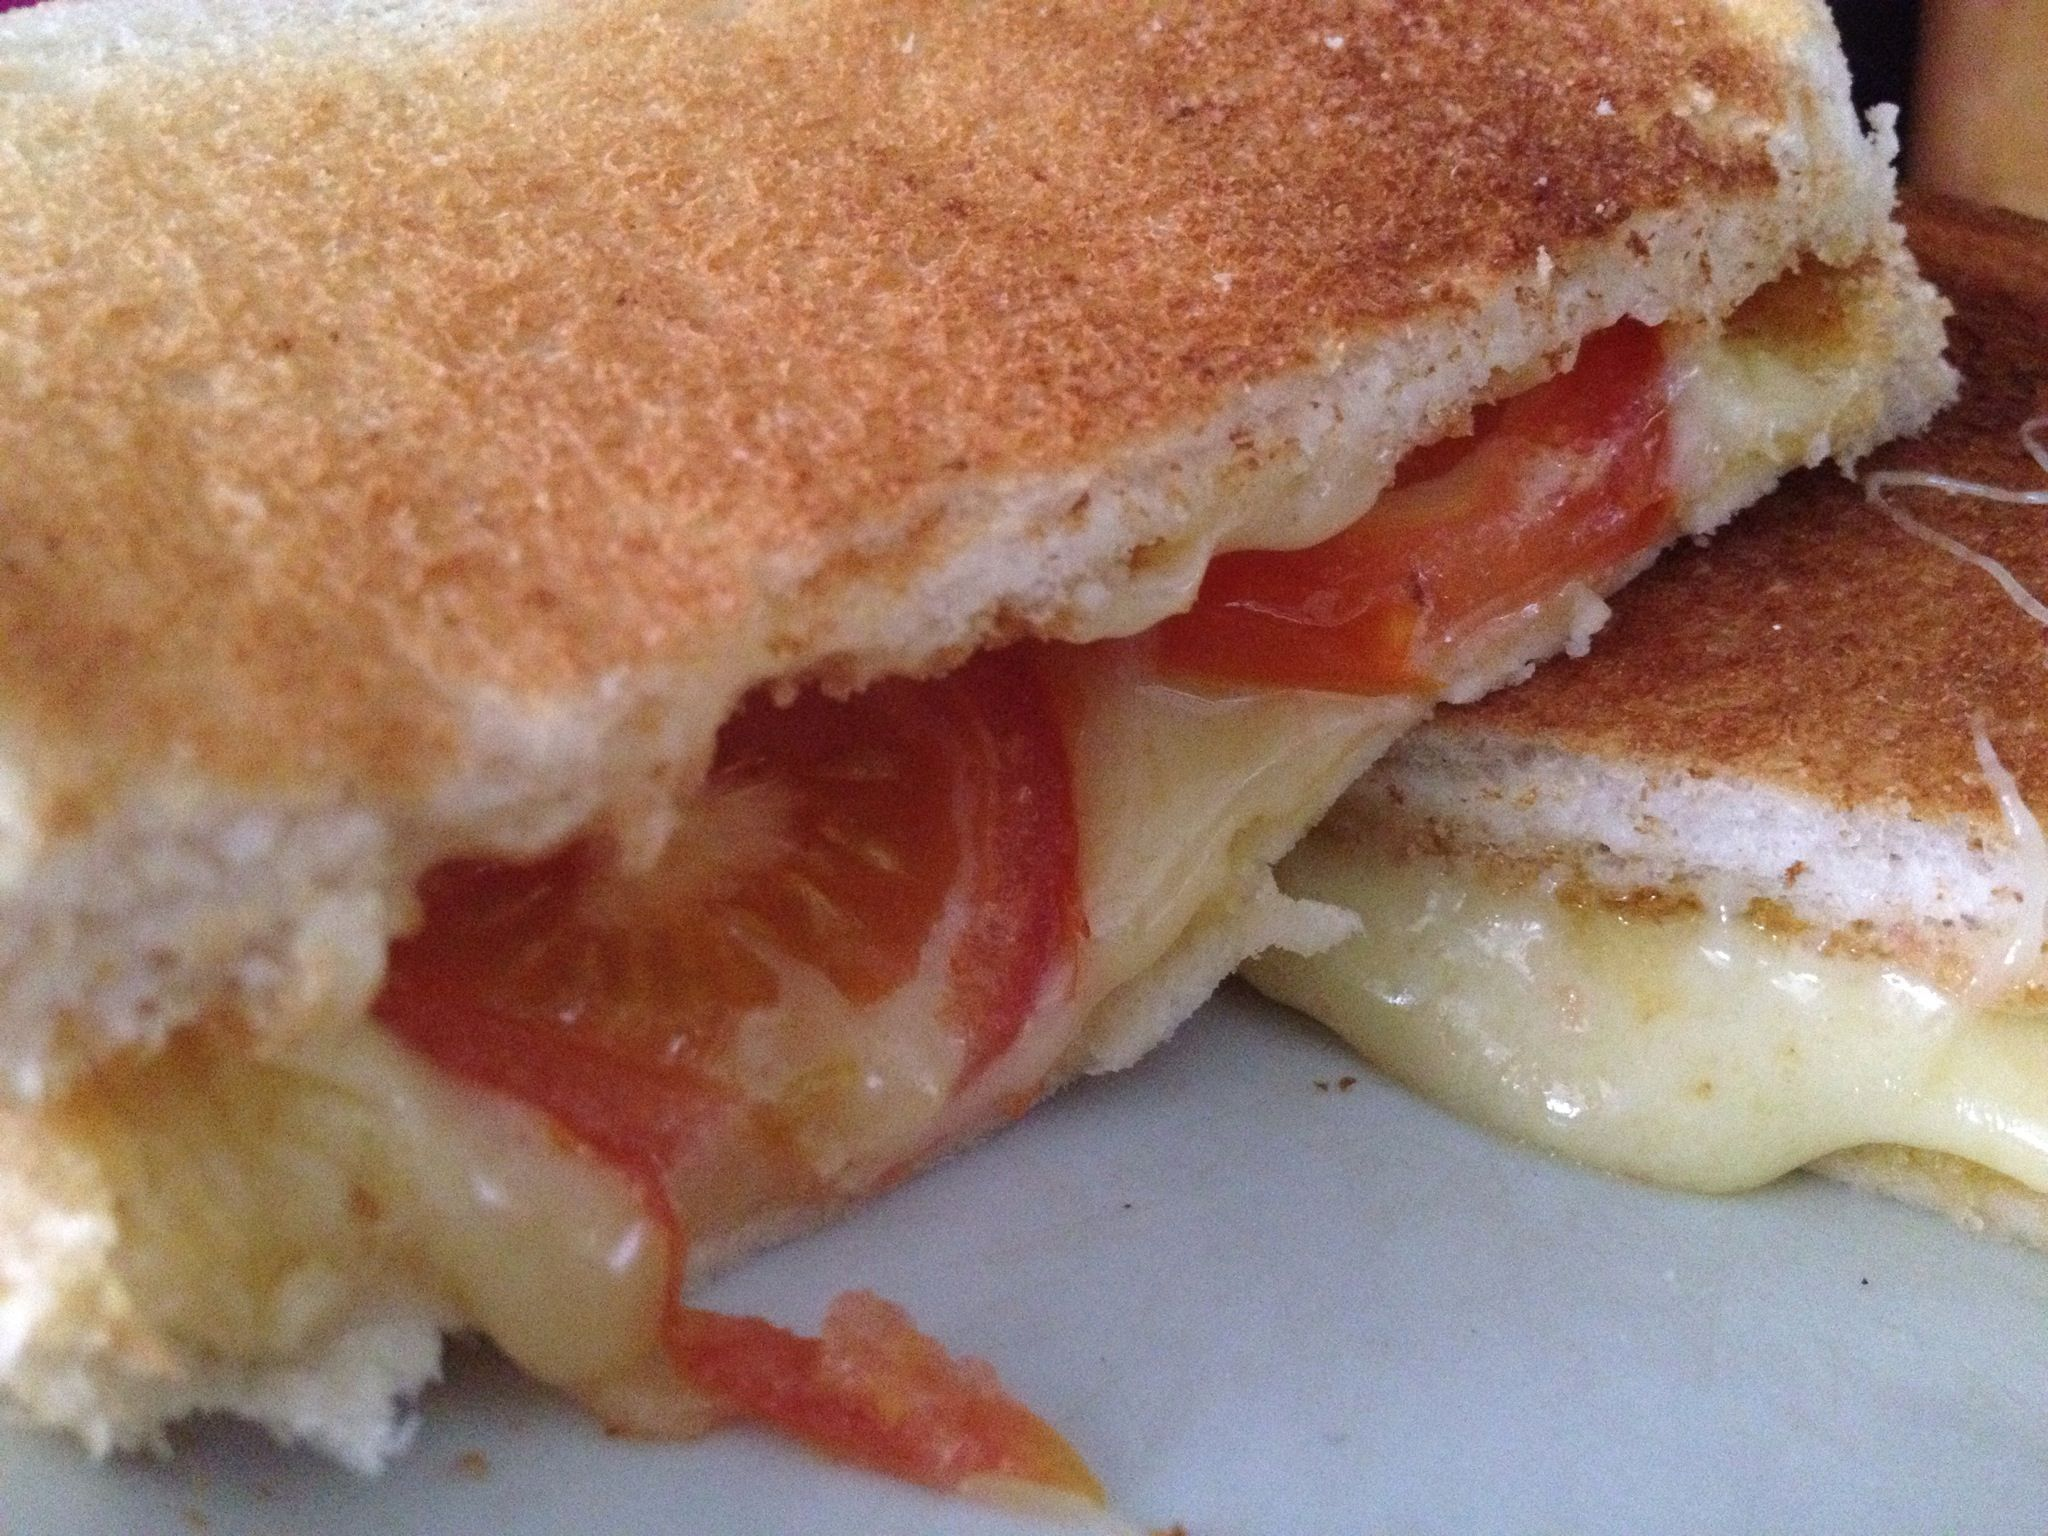 How To Cook A Cheese Amp Tomato Toasted Sandwich